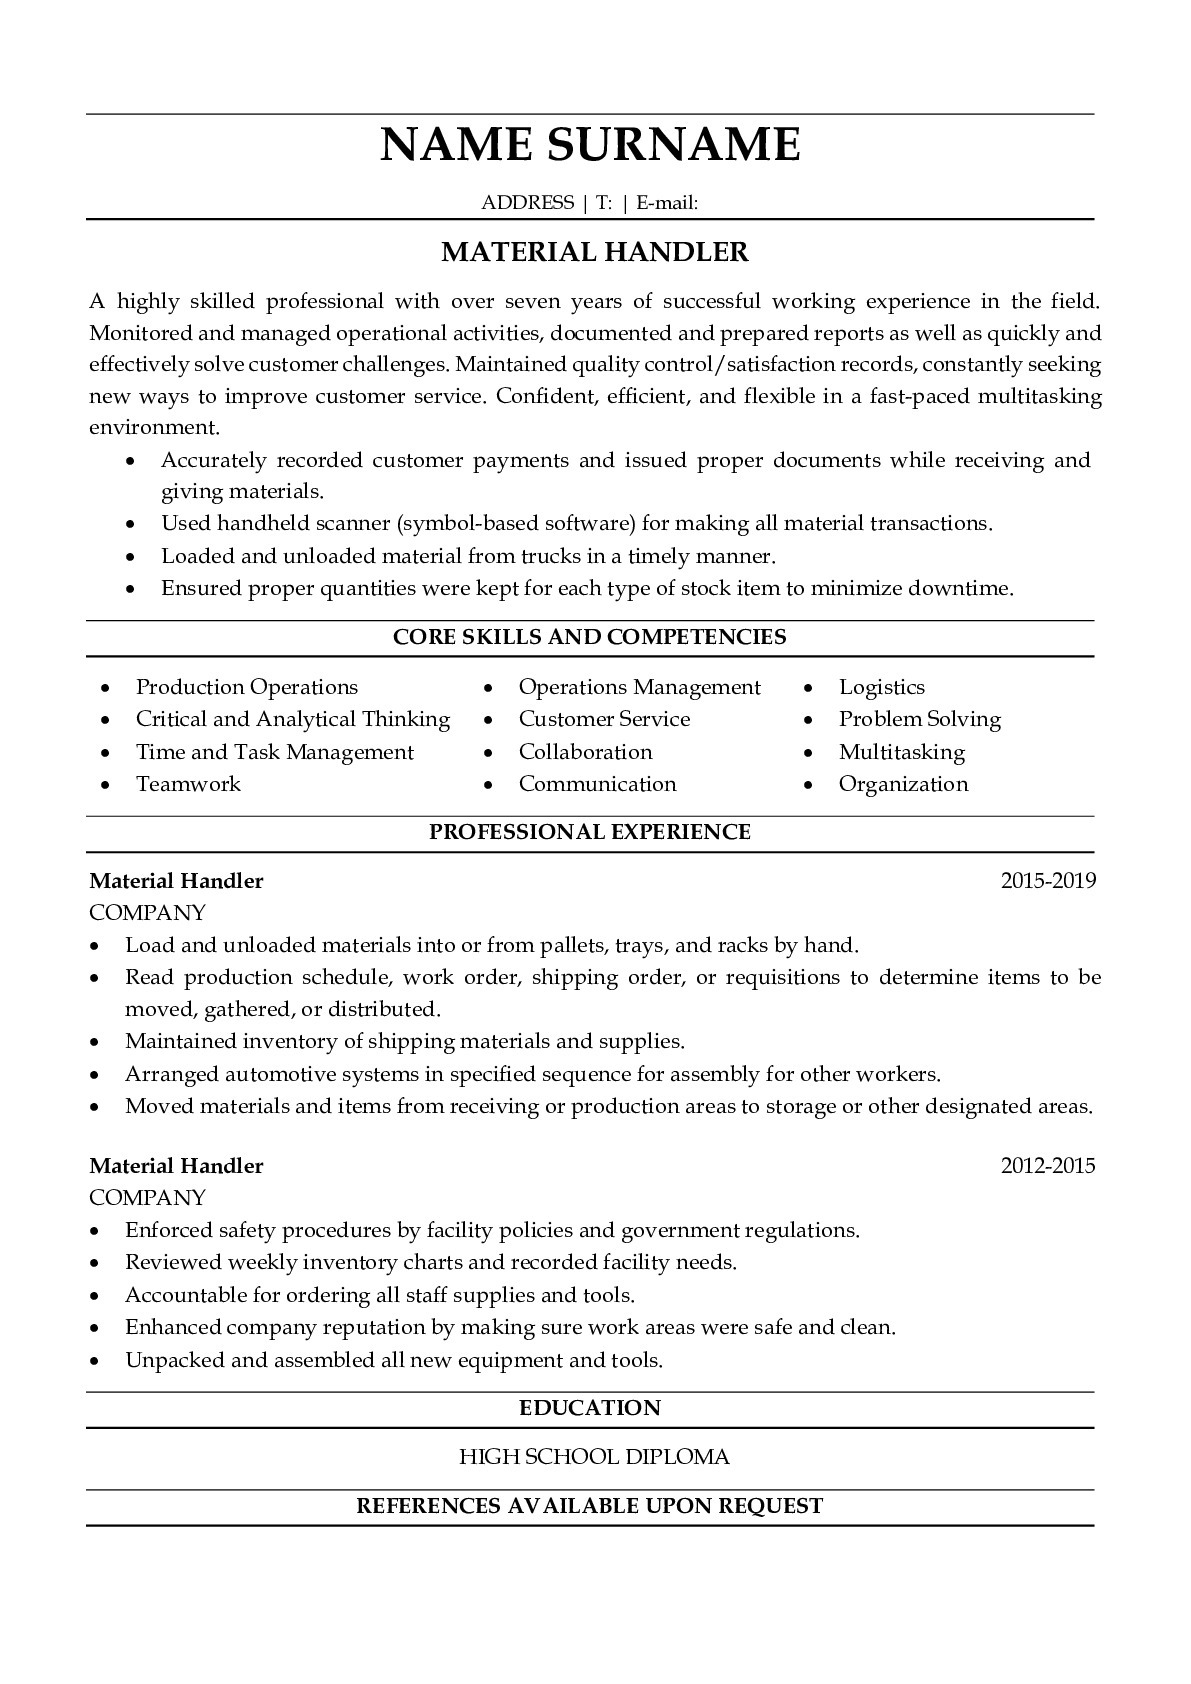 Resume Example for Material Handler